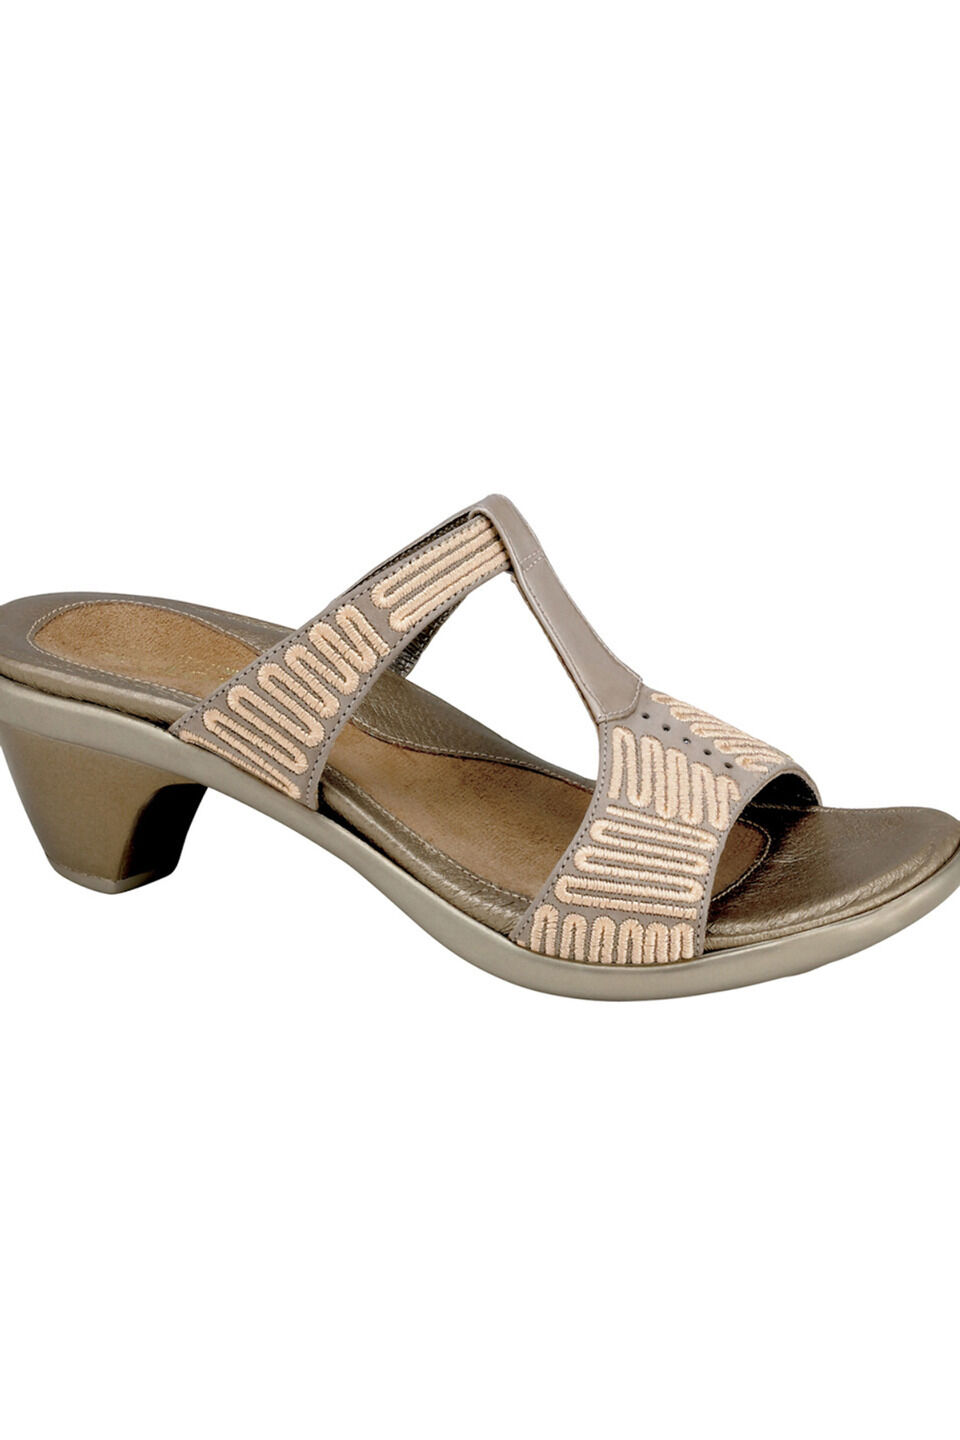 Naot Delia W68 Pearl Canvas Comb Womens Shoes Shoes Womens size US 6-11 57acc4